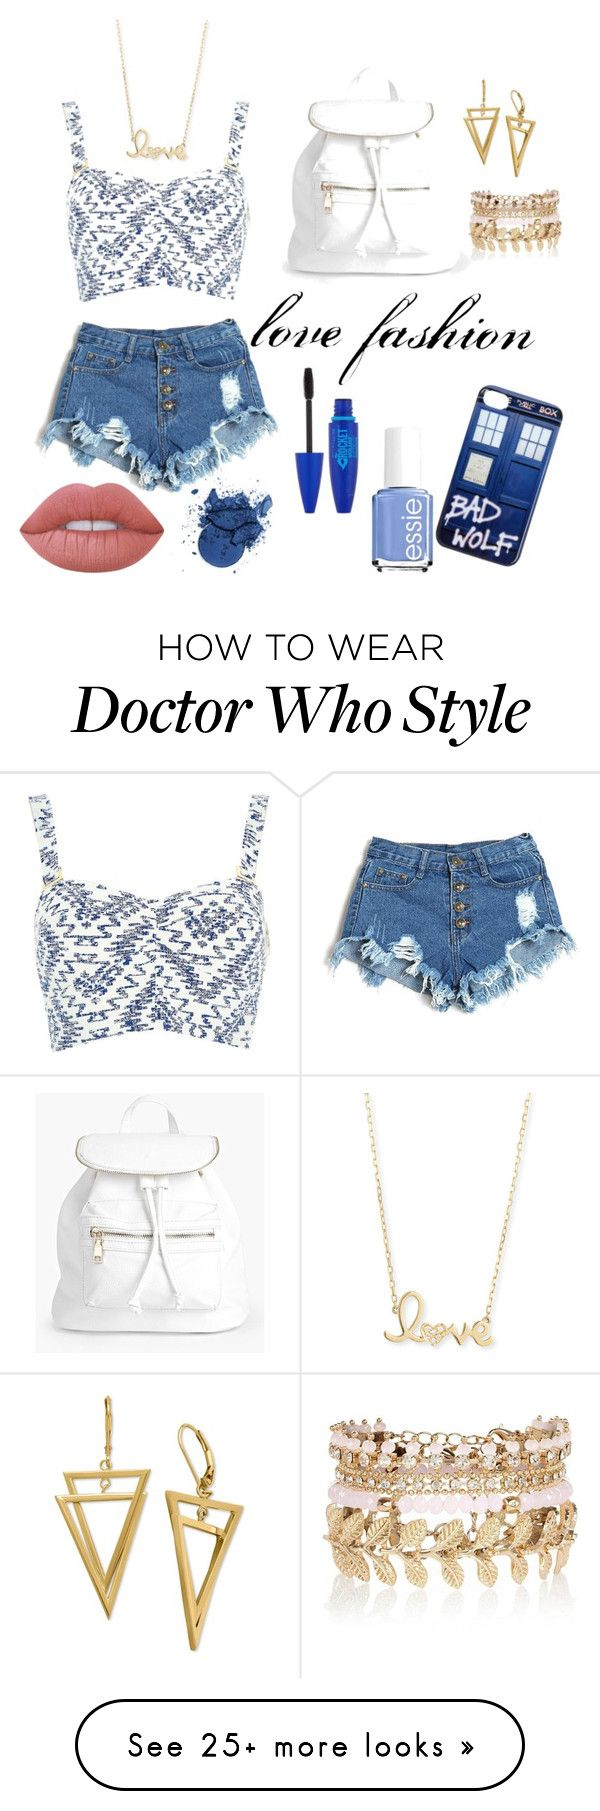 """fashion 1"" by violettepousset on Polyvore featuring River Island, Boohoo, Sydney Evan, Lime Crime, Maybelline and Essie"